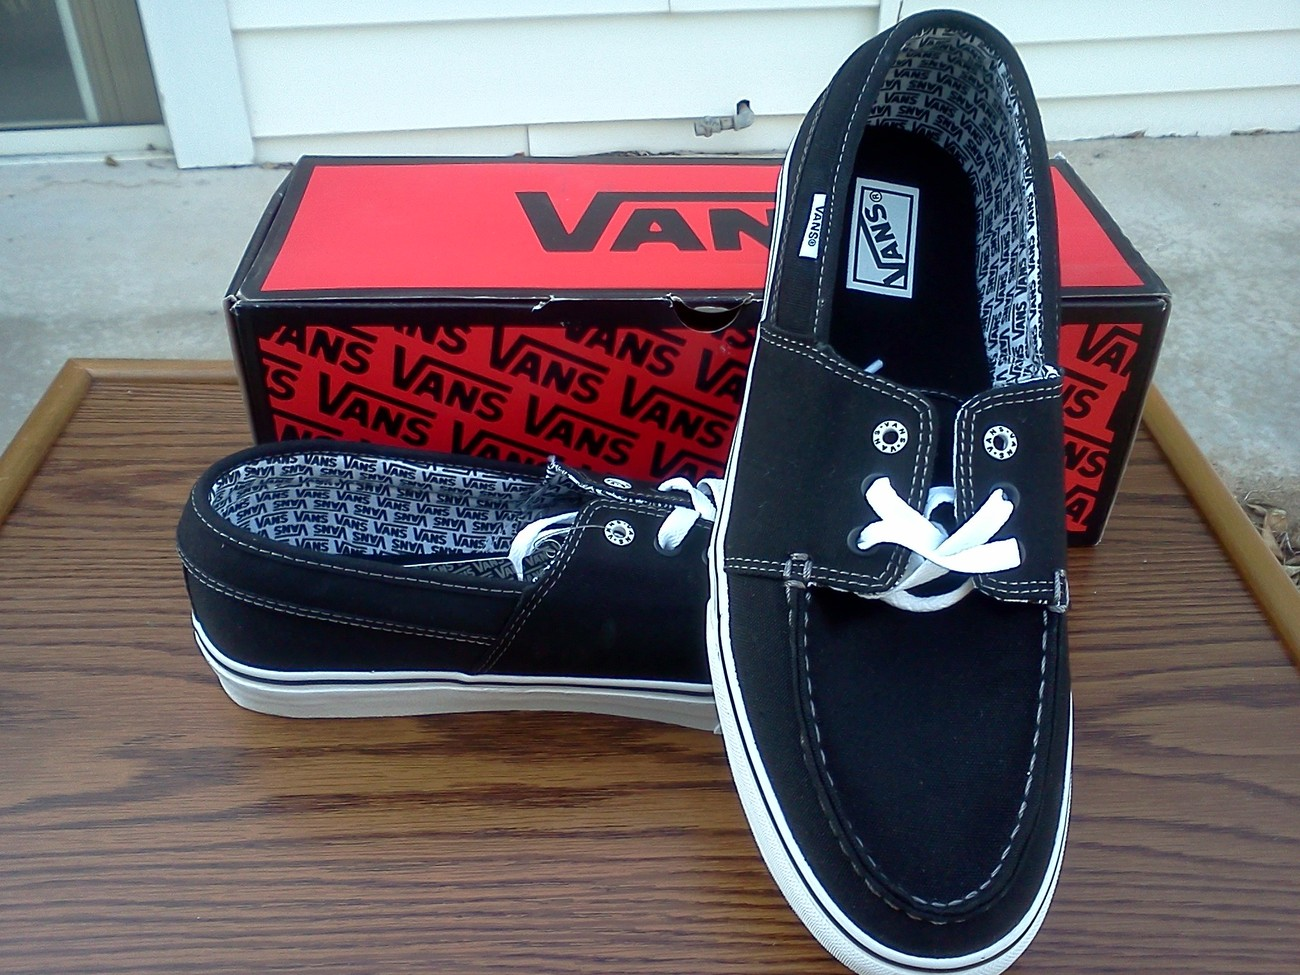 VANS Hull black/white/white Size 12, New, VANS Shoes for Men, Black Vans